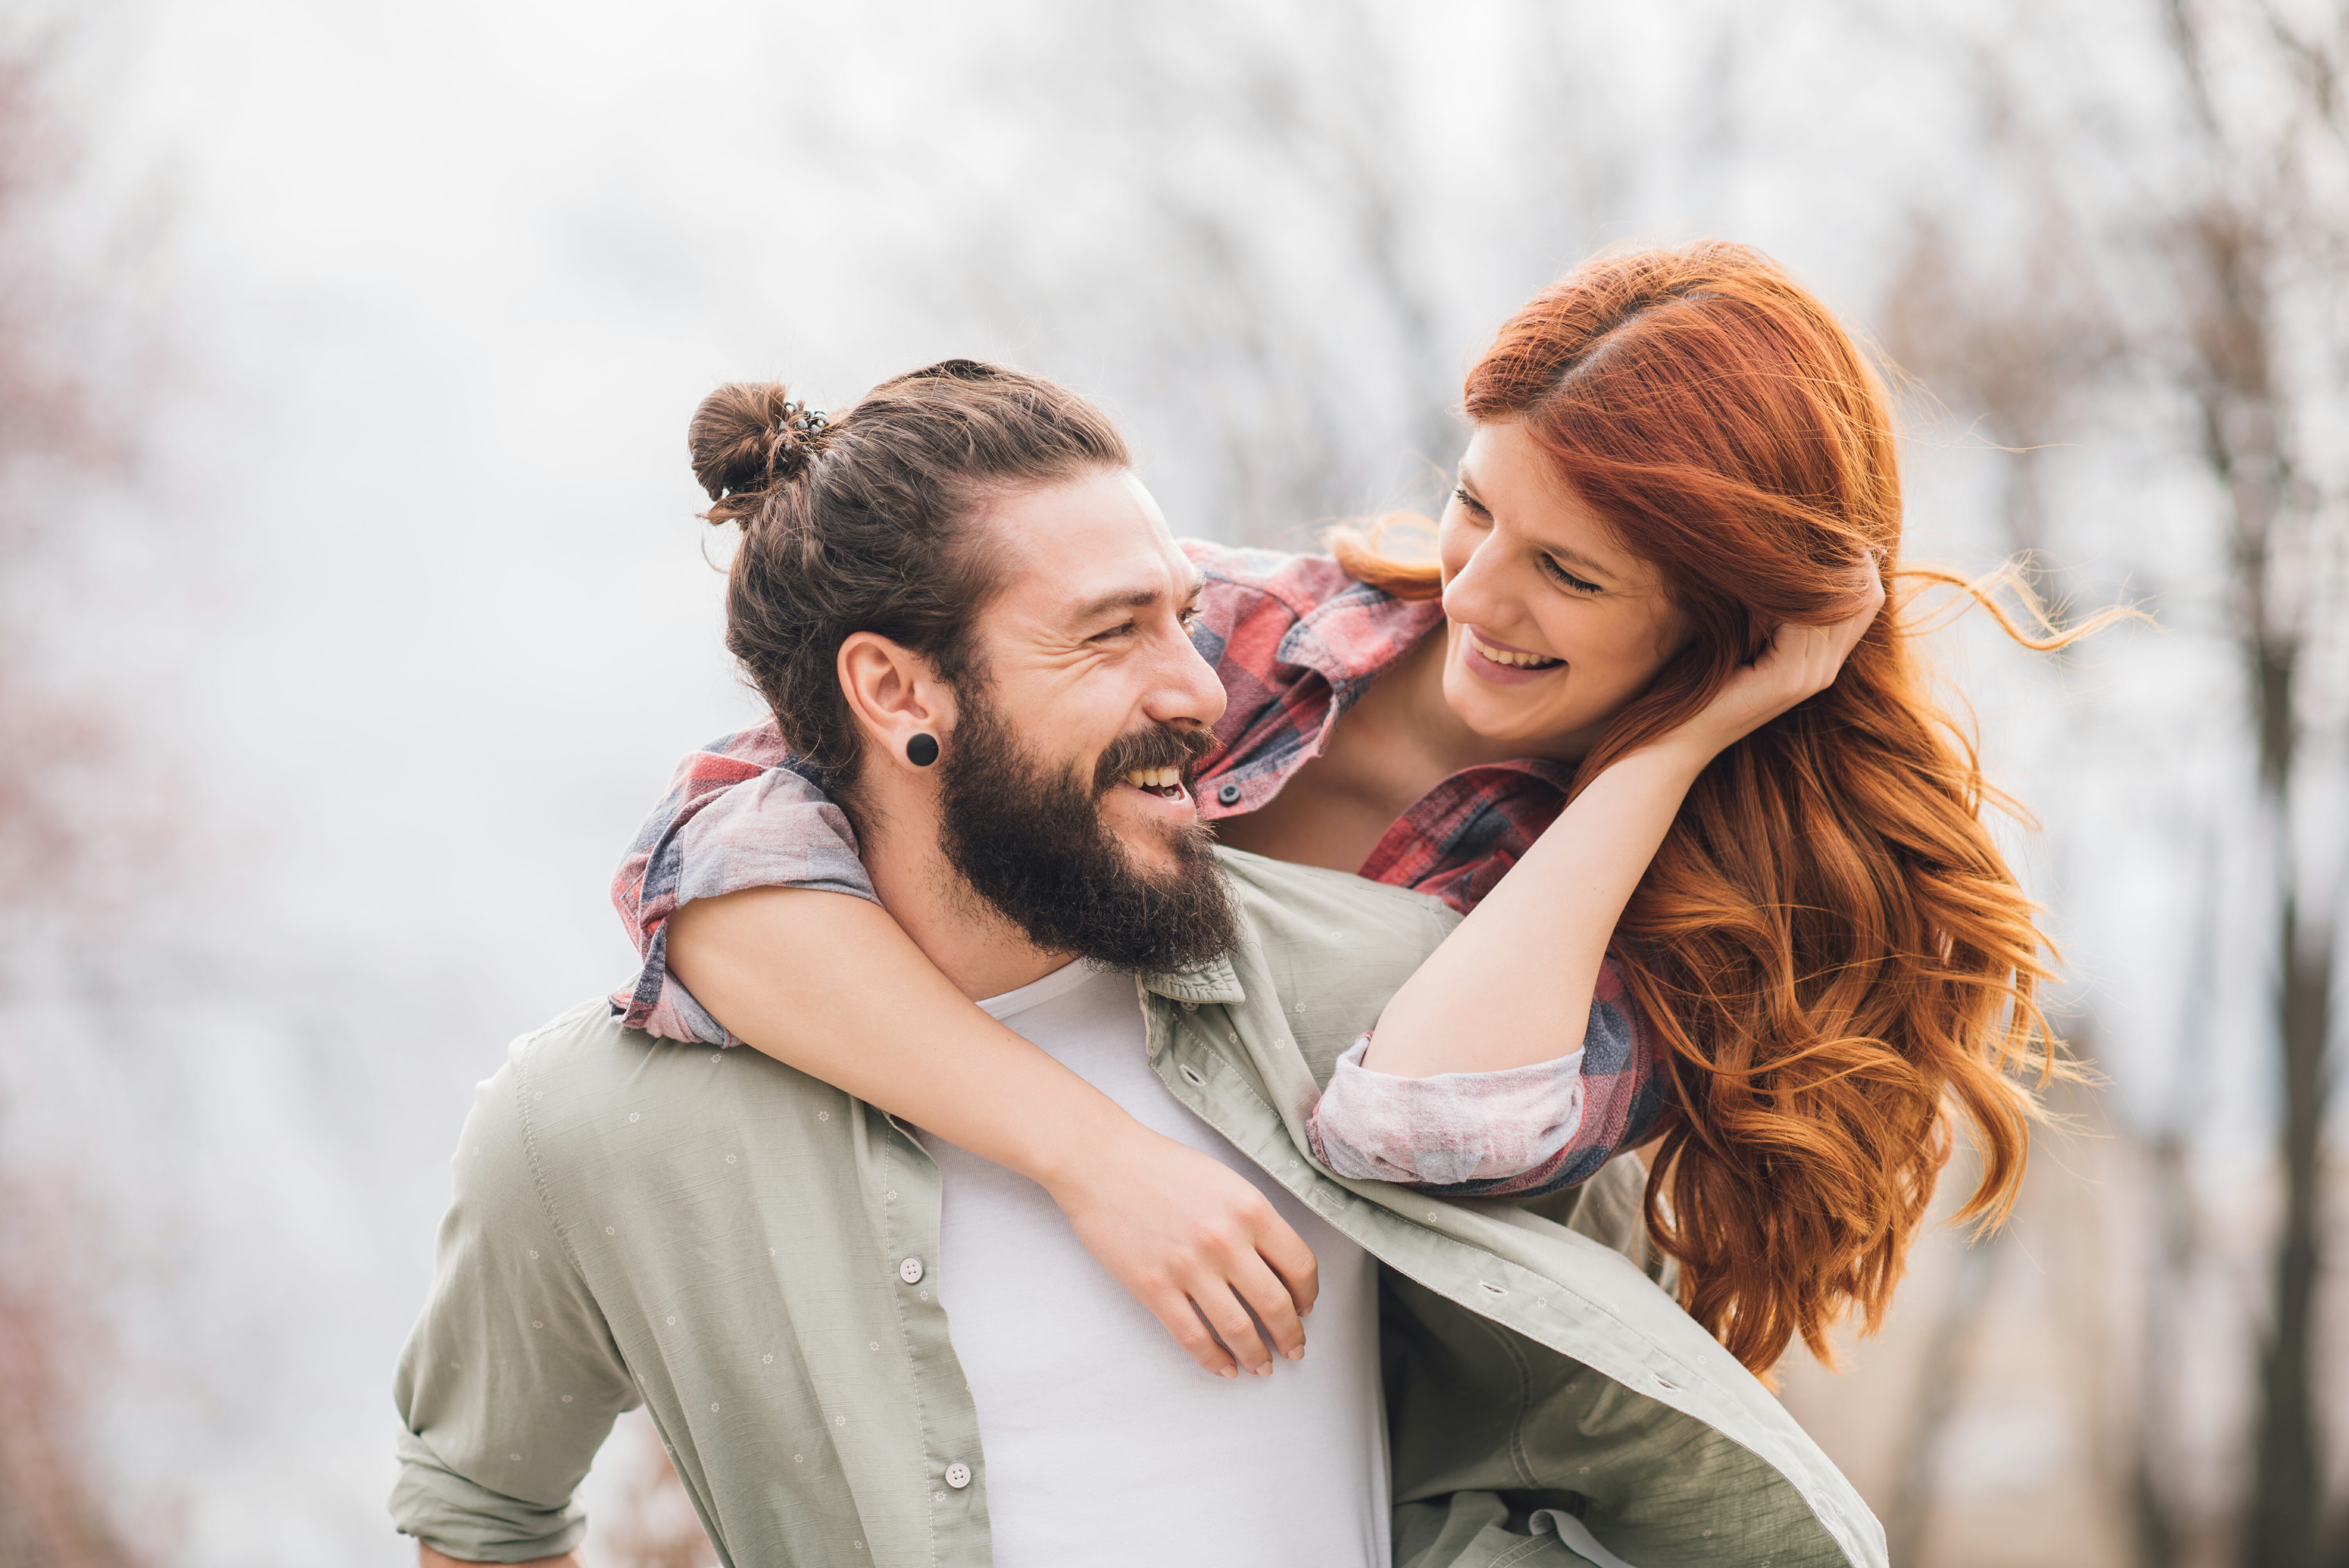 How Do You Know When to Get Married? 9 Signs You're Ready to Get Engaged